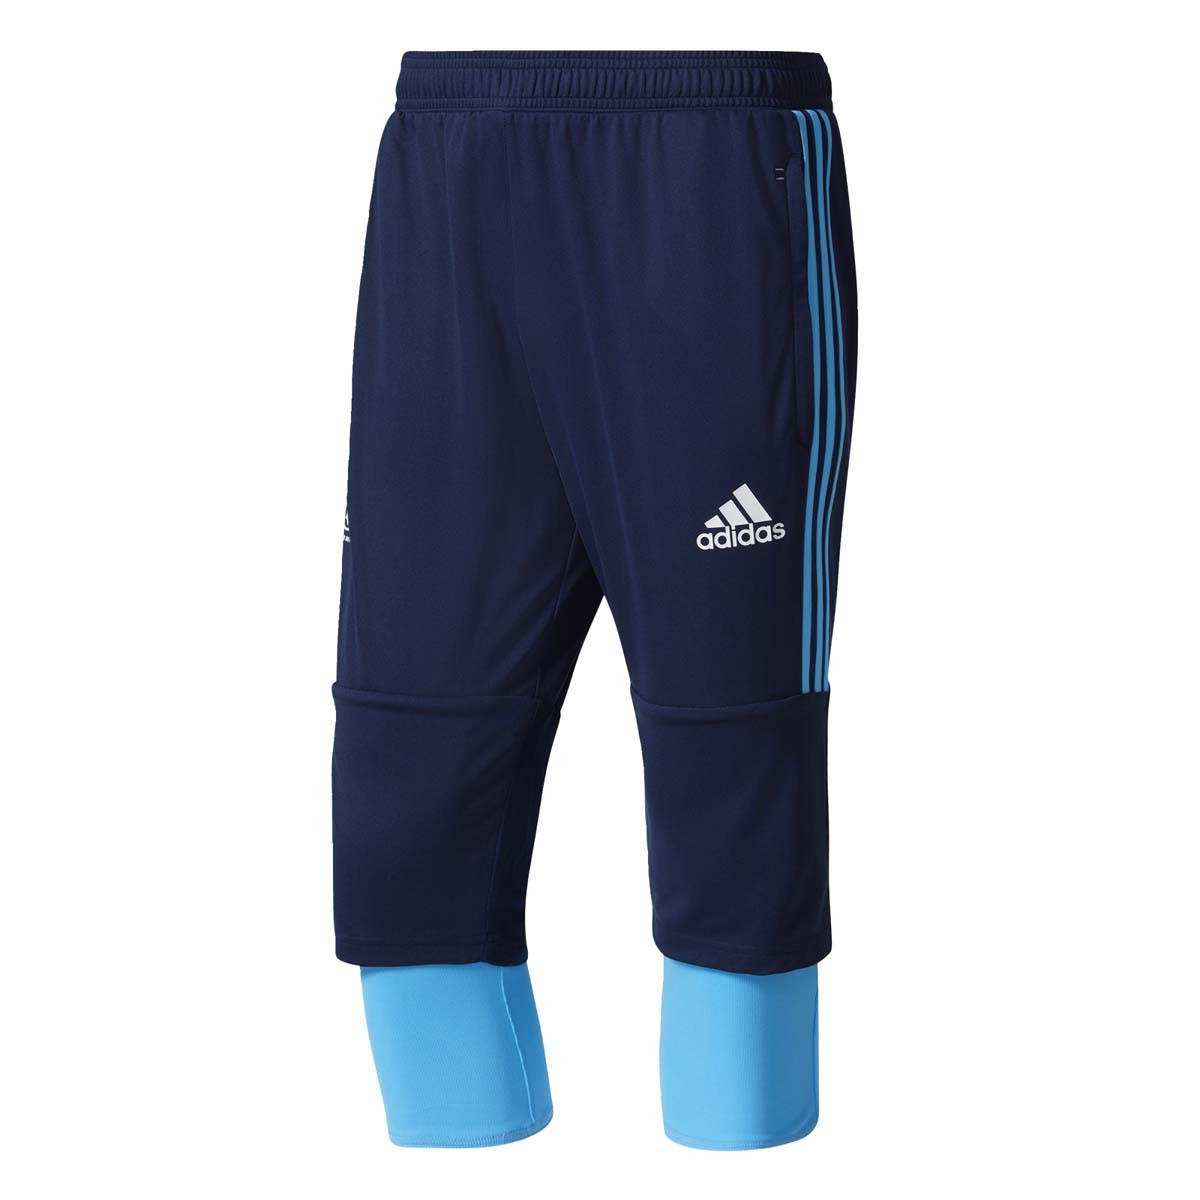 ADIDAS OM PANTACOURT JUNIOR MARINE 20172018 Pantalon